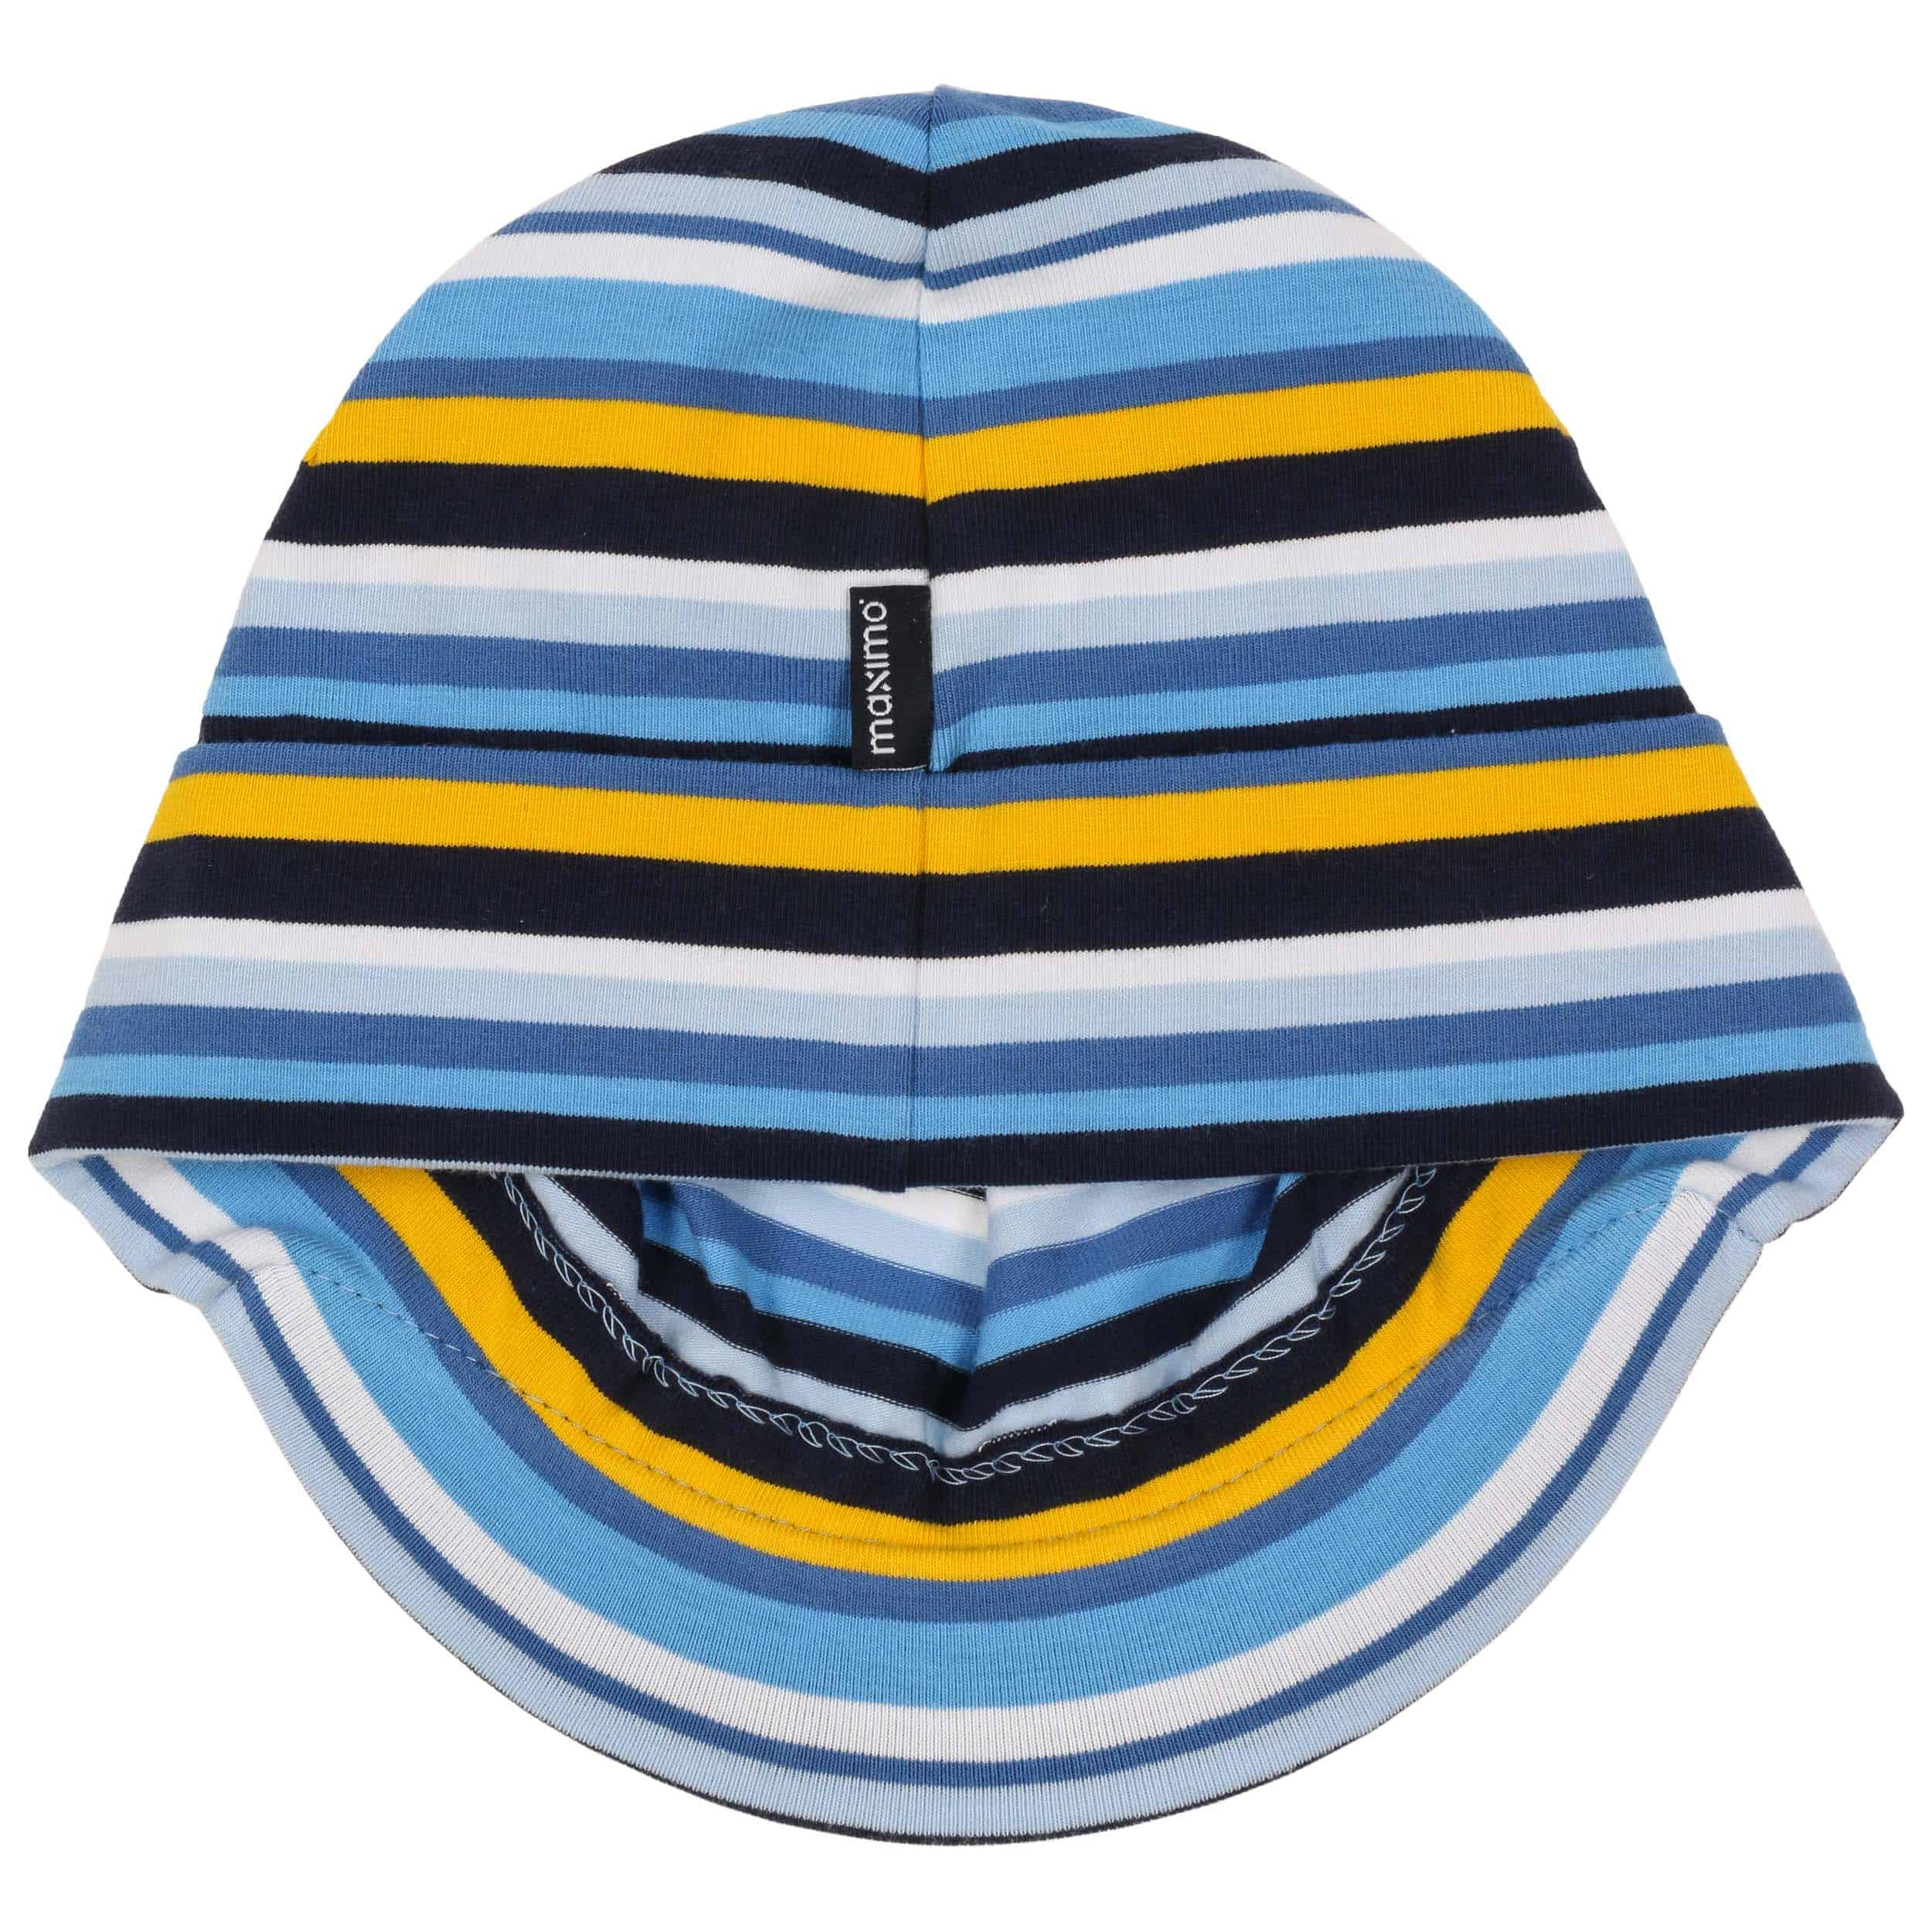 73ad0a60373 ... Jersey Stripes Kids Peak Hat by maximo - blue 2 ...